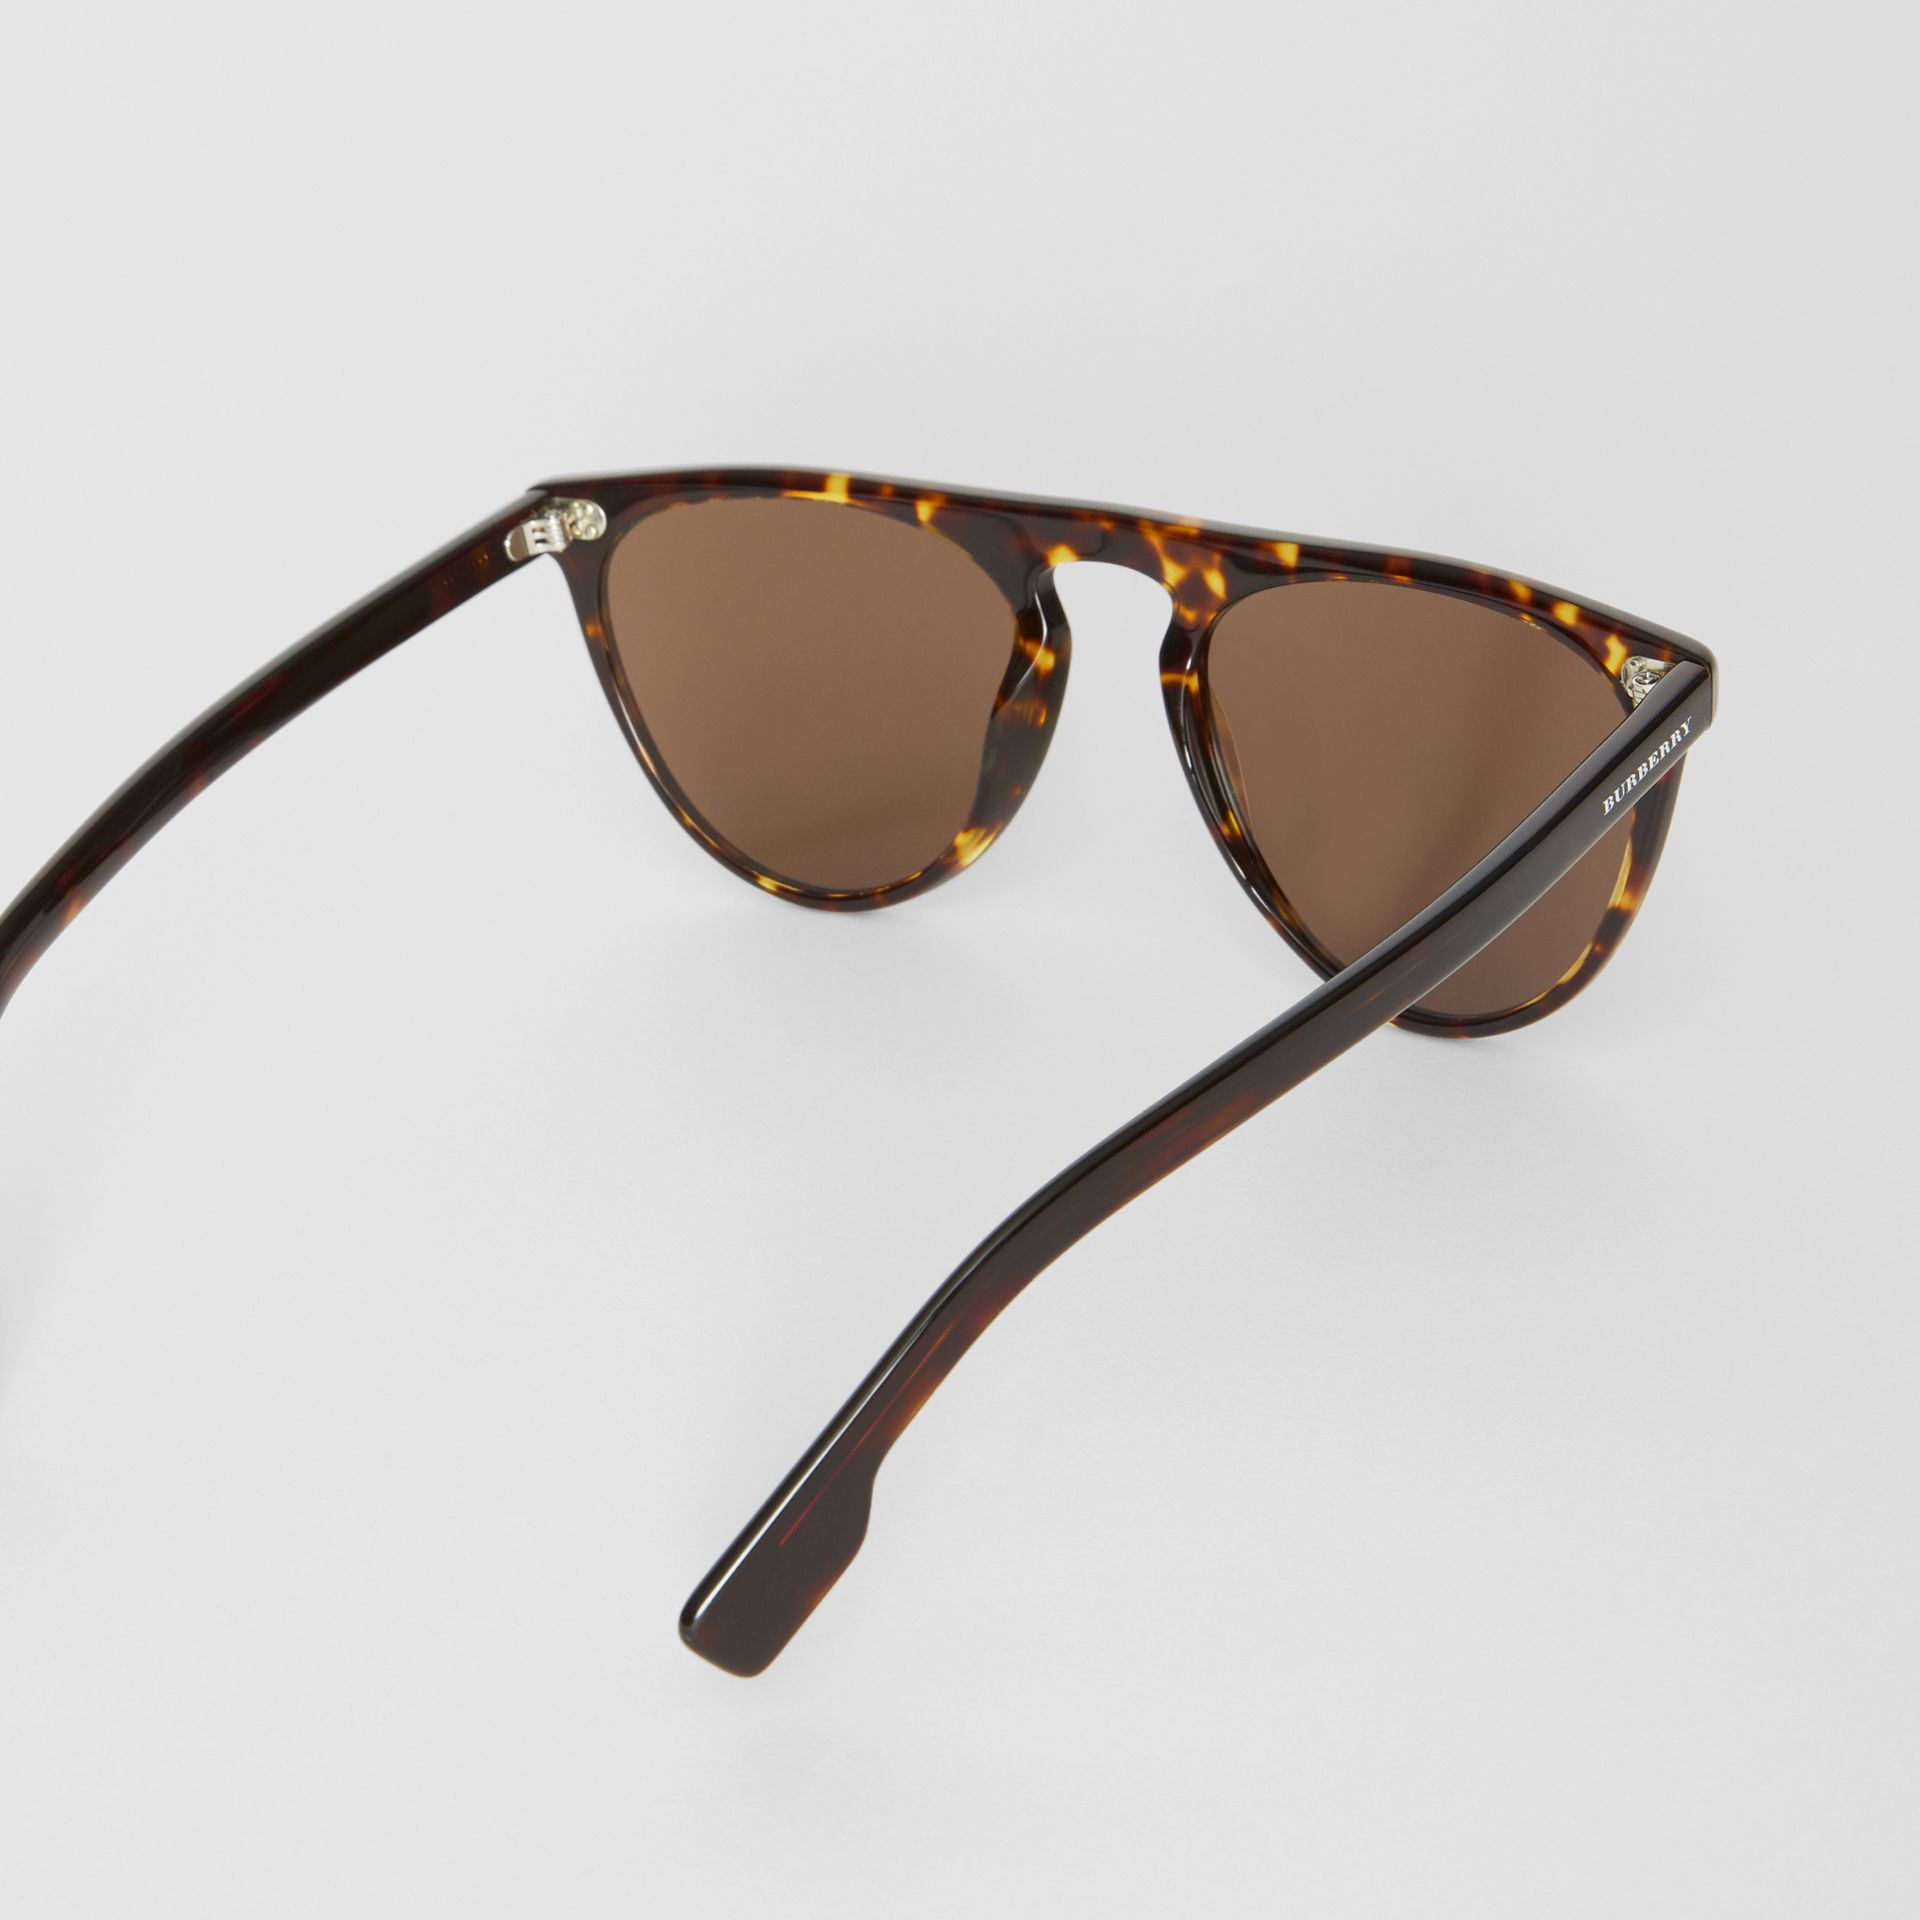 Keyhole D-shaped Sunglasses in Tortoise Shell - Men | Burberry United Kingdom - gallery image 4